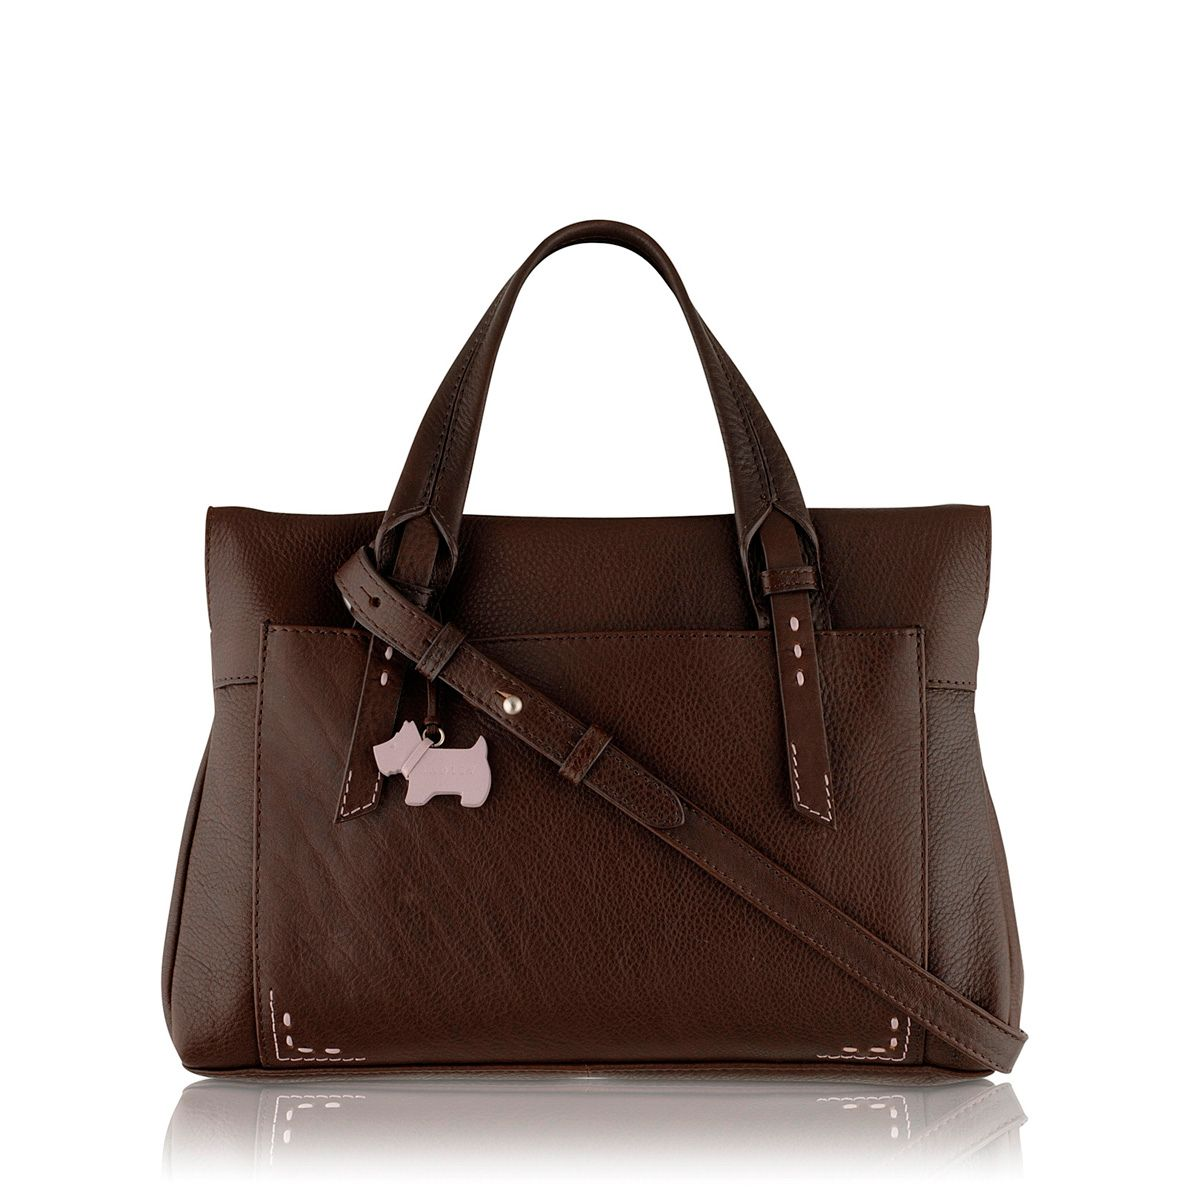 Barnsley medium crossbody brown leather tote bag